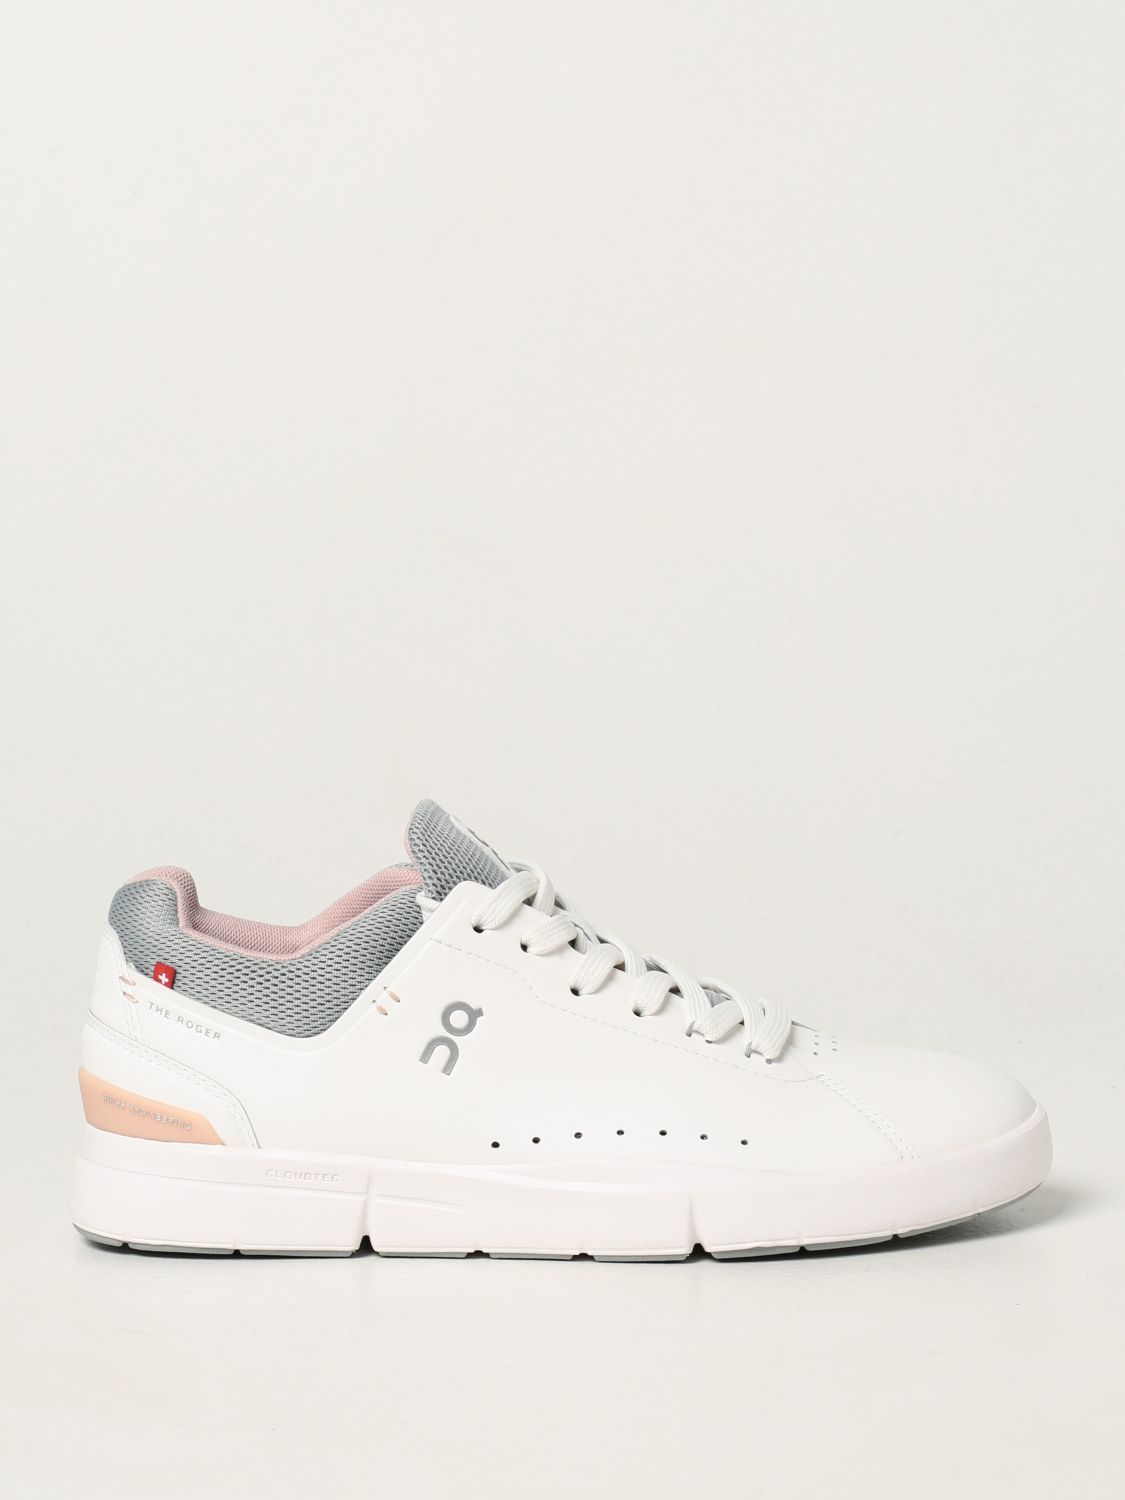 Baskets The Roger: Chaussures femme The Roger blanc 1